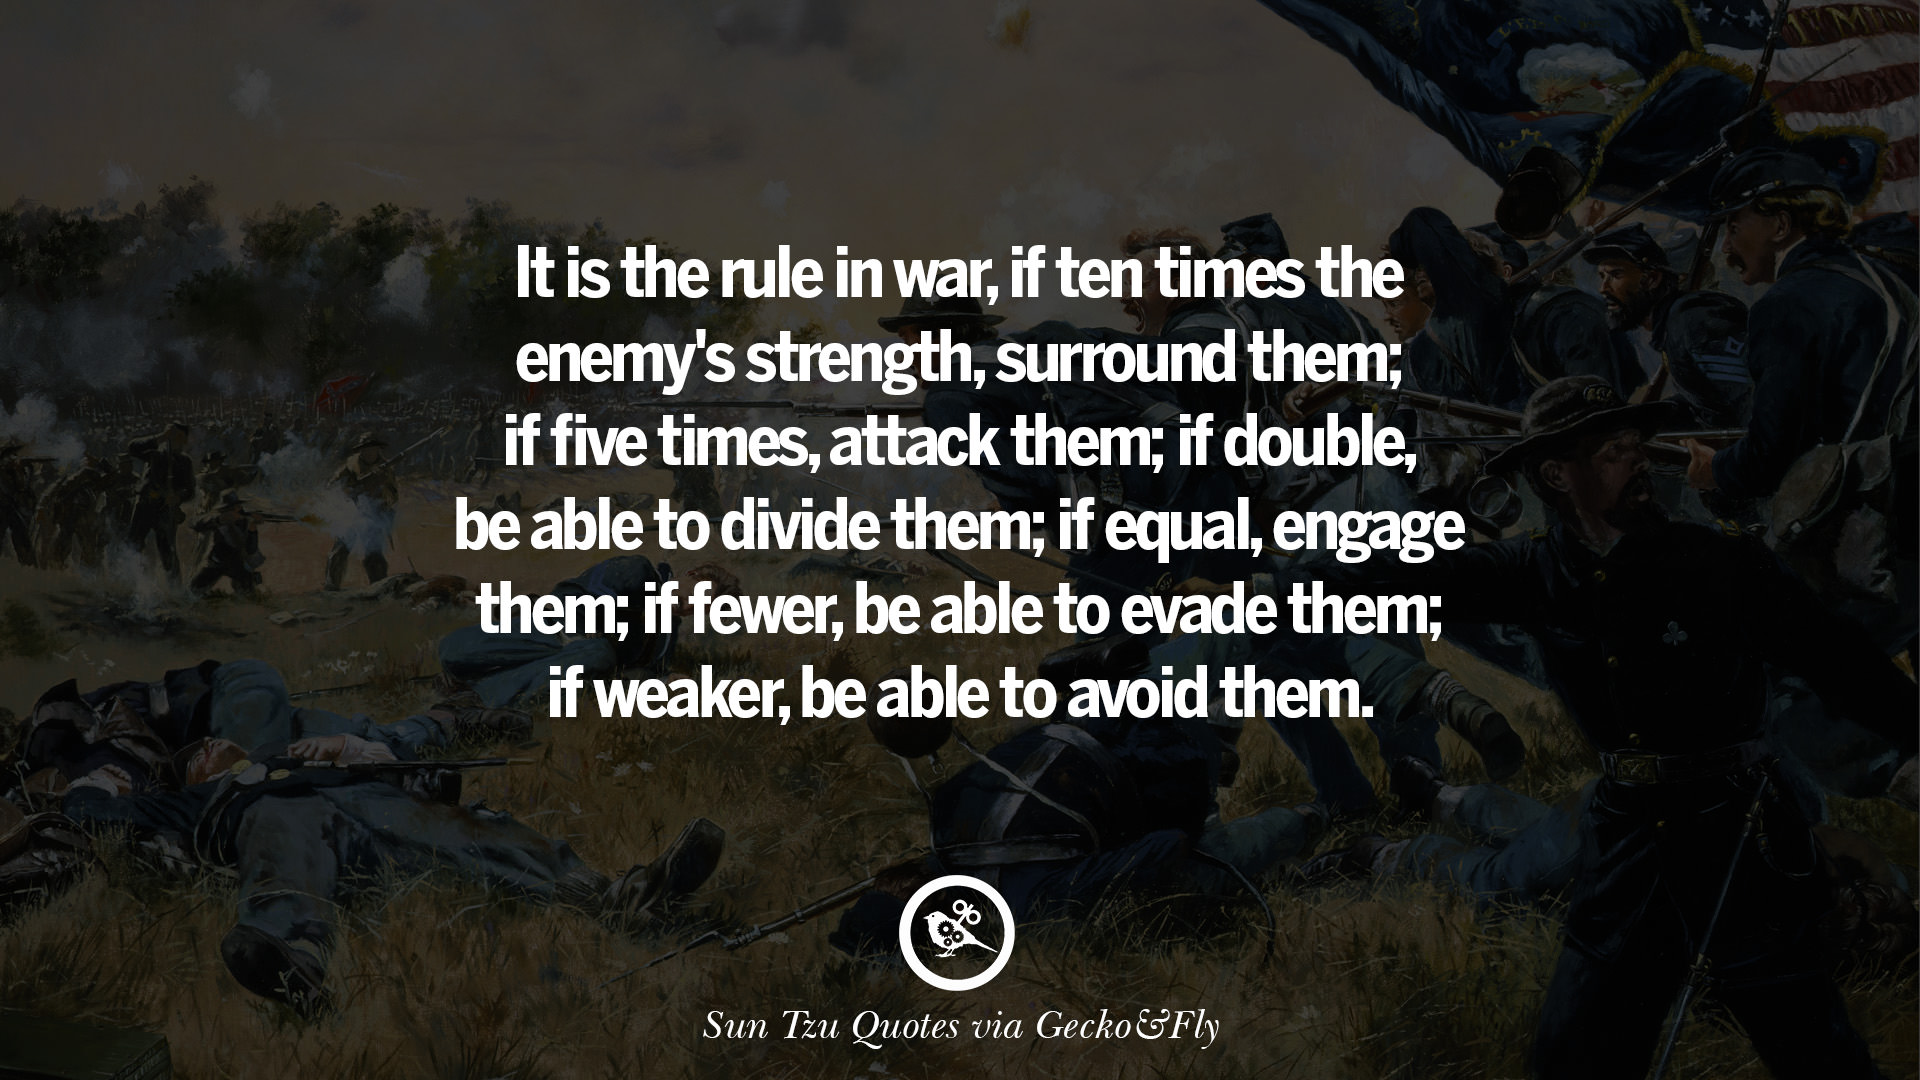 sun tzu's art of war and For the full text see - the art of war online the art of war by sun tzu (aka sun wu, sun zi or master sun) is considered the most important work on military theory produced in ancient china and it is one of the most influential chinese books world-wide.